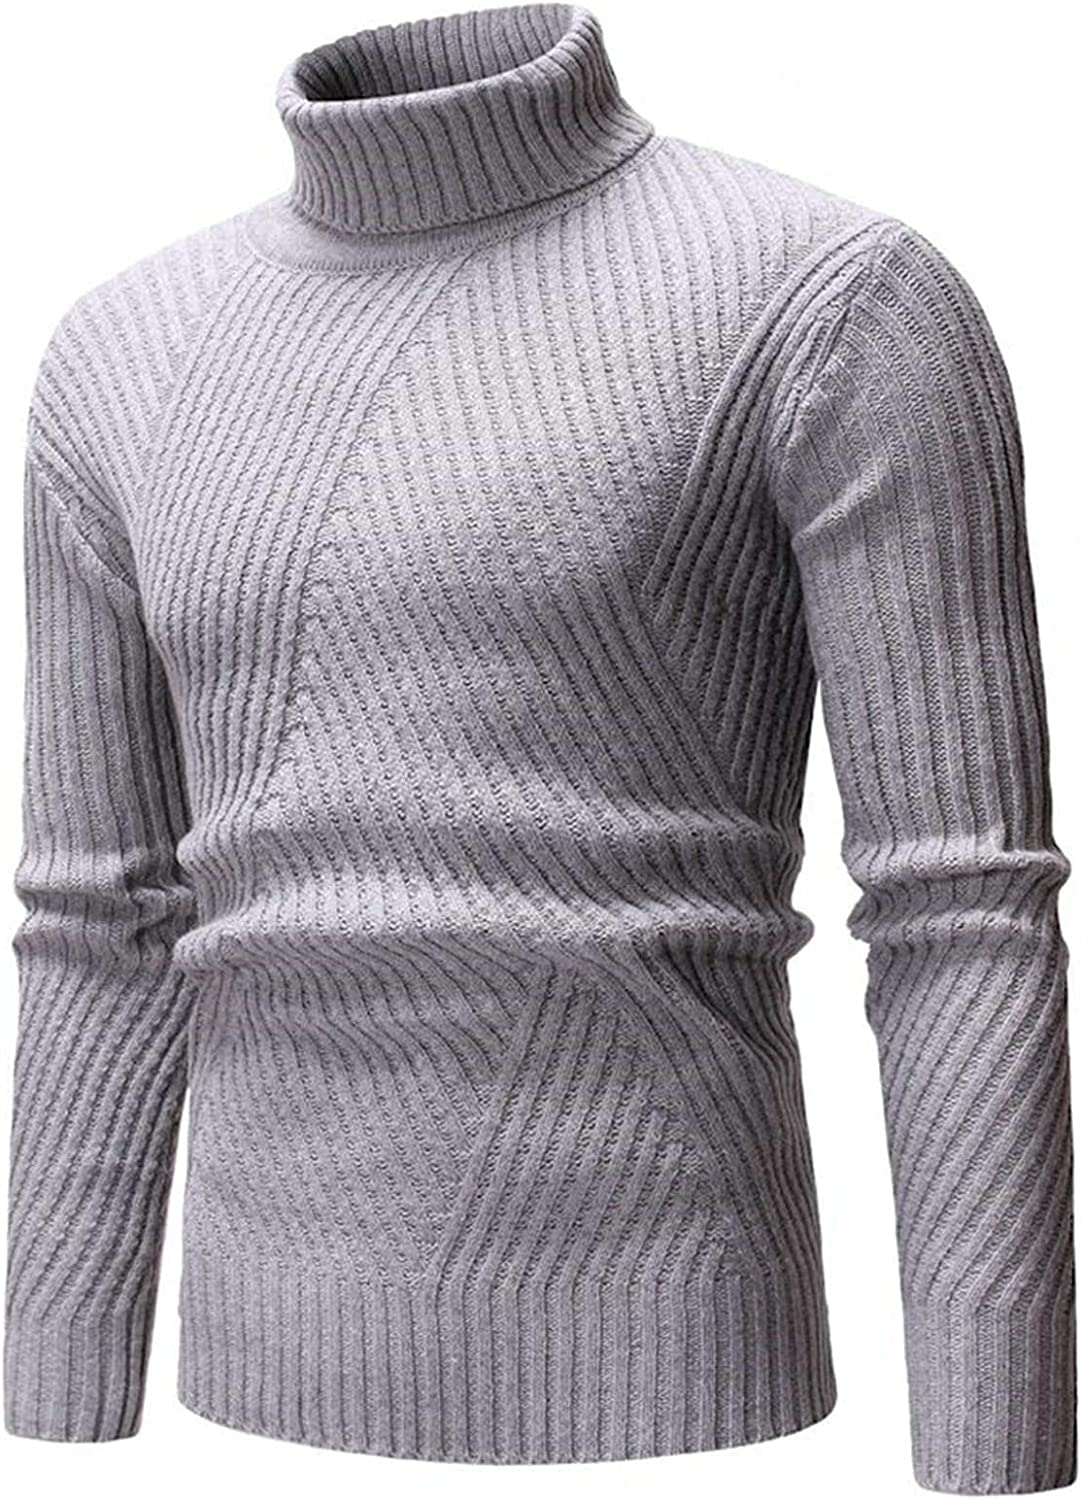 WUAI-Men Slim Fit Turtleneck Sweater Casual Twisted Knitted Thermal Pullover Jumper Tops Big and Tall